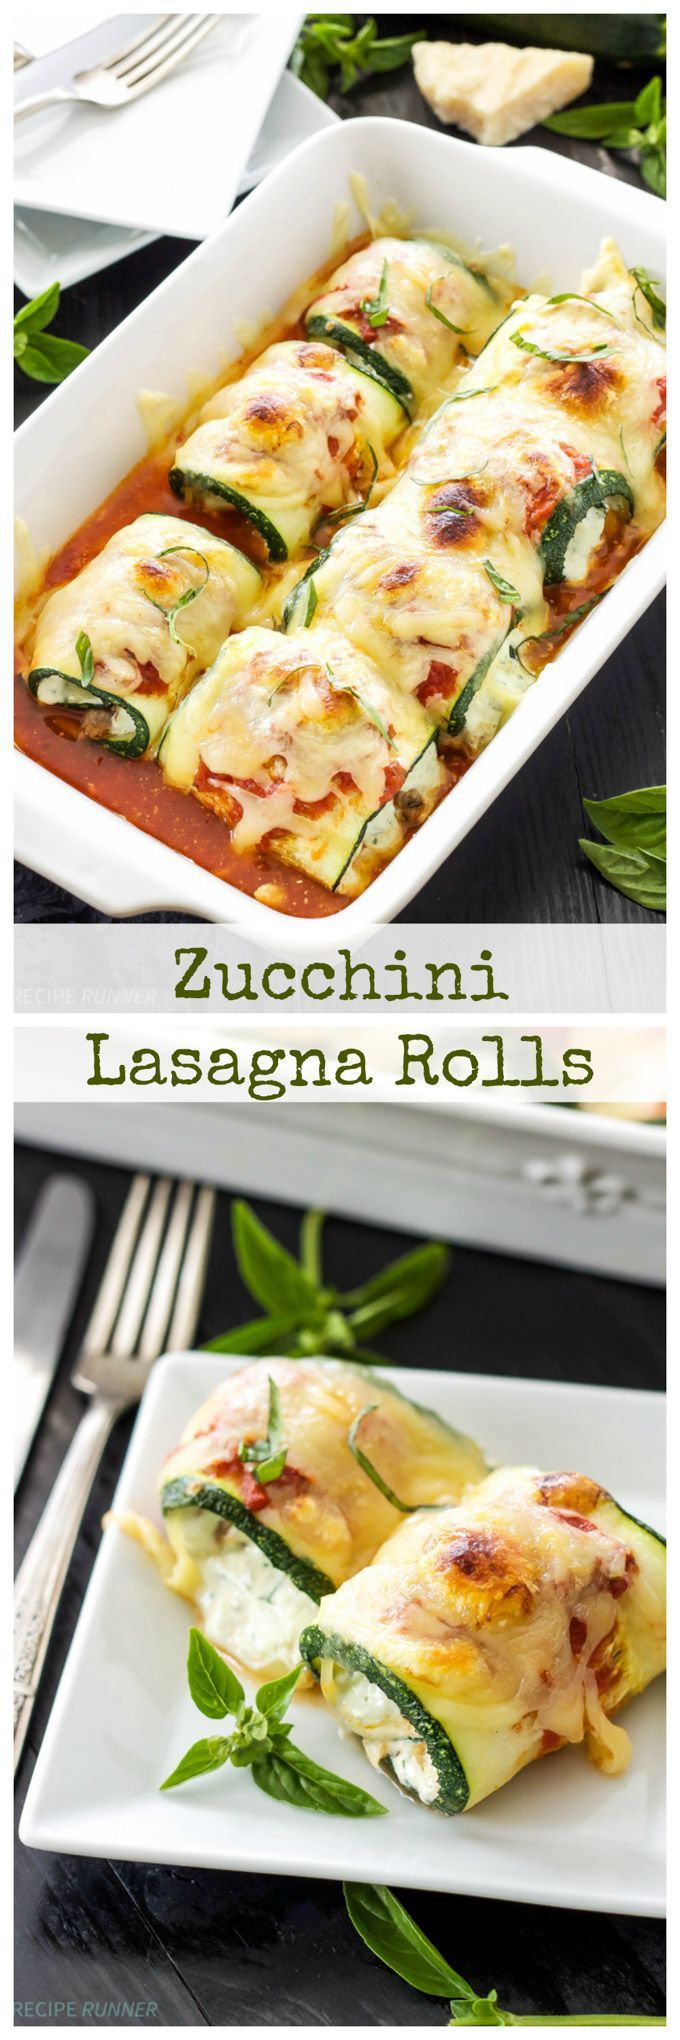 Zucchini Lasagna Rolls | Use zucchini instead of pasta in this healthy, gluten free lasagna recipe! #glutenfree #recipes #gluten #healthy #recipe